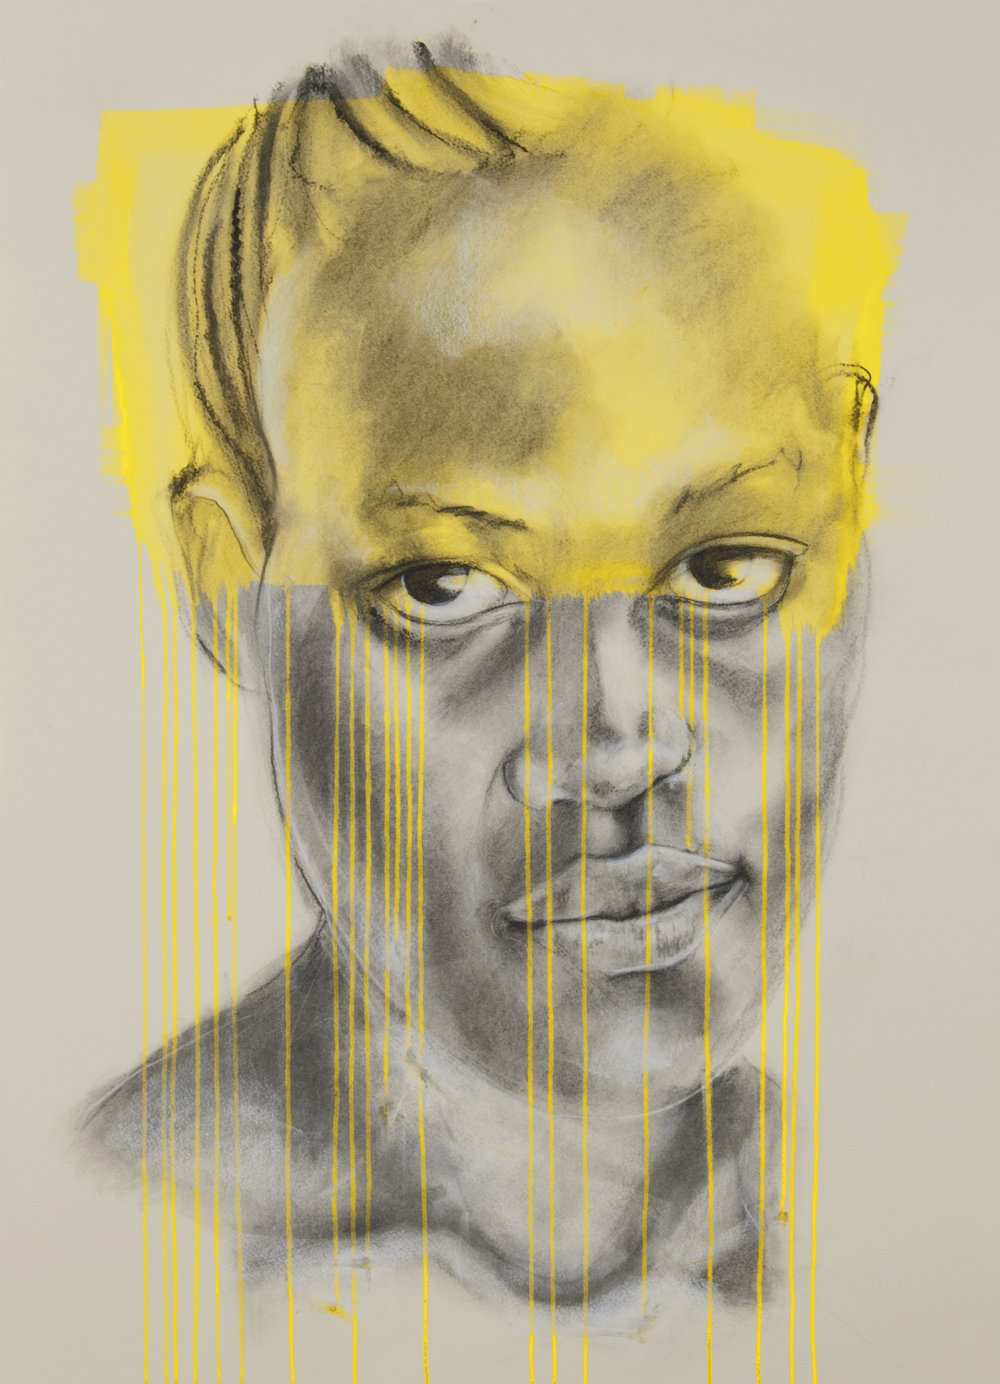 'Yellow', charcoal and ink, Jac Saorsa 2015